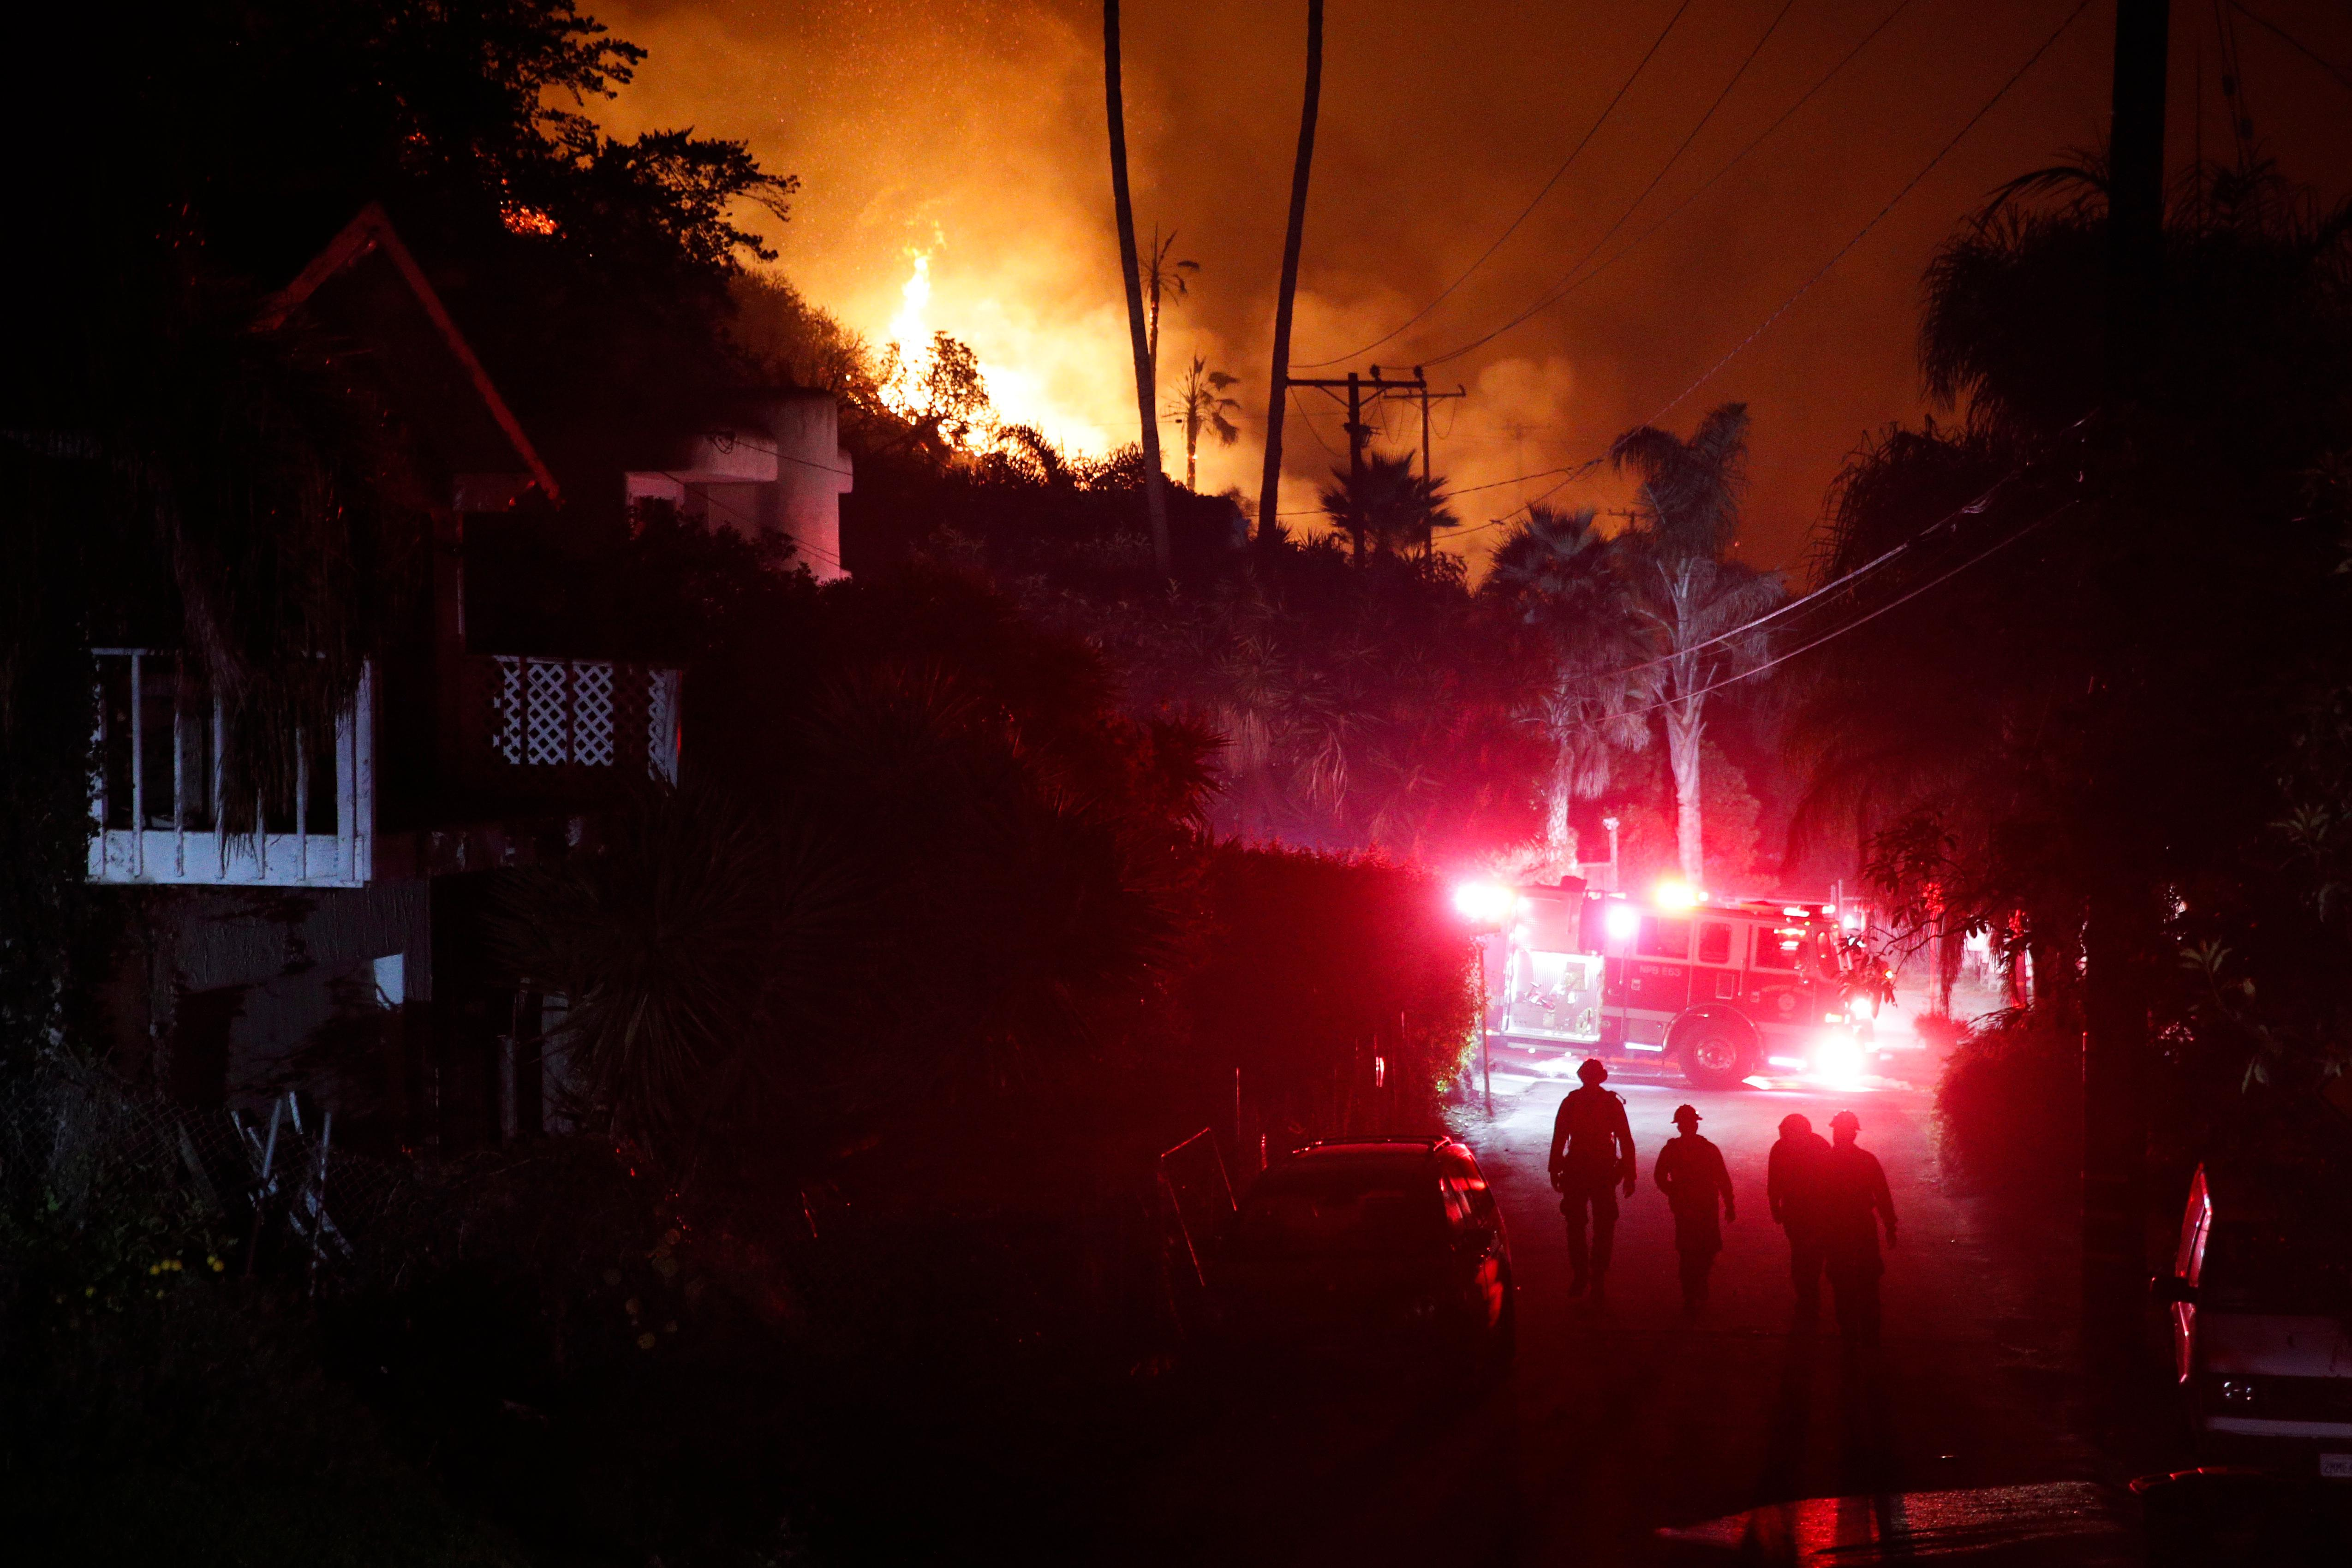 Firefighters walk along an alley as a wildfire burns along a hillside toward homes in La Conchita, Calif., Thursday, Dec. 7, 2017. The wind-swept blazes have forced tens of thousands of evacuations and destroyed dozens of homes. (AP Photo/Jae C. Hong)